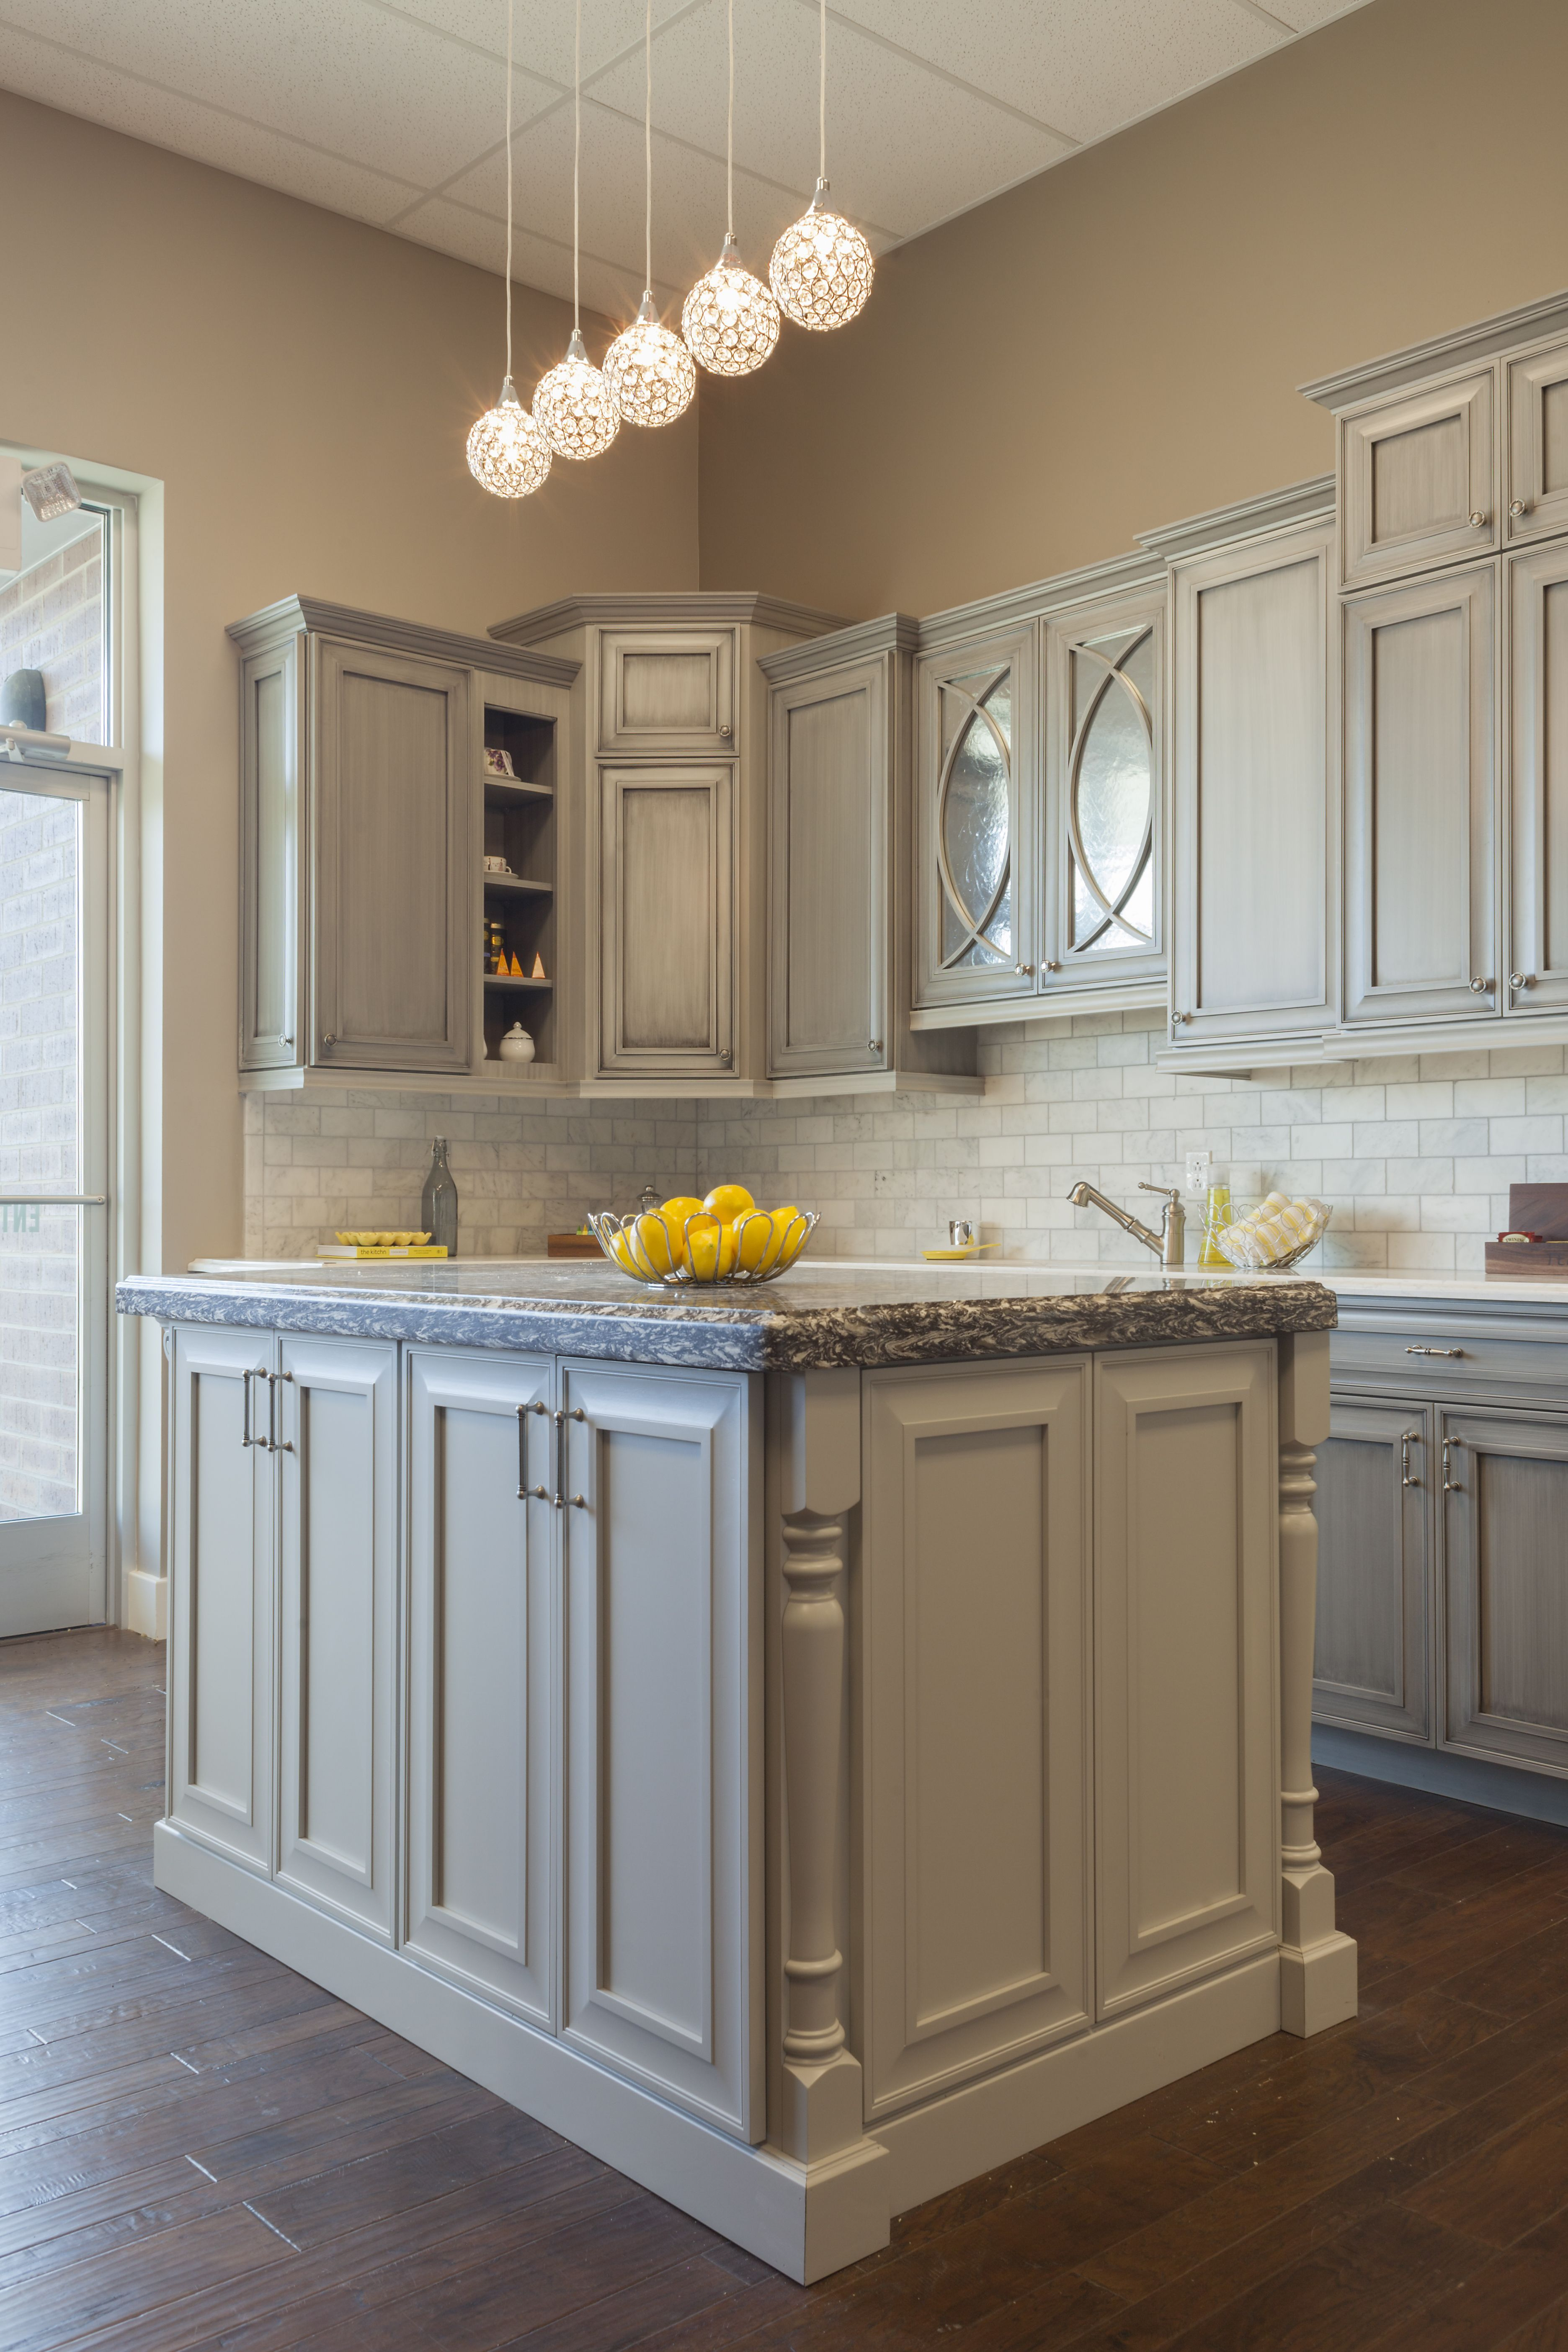 Stop In And Check Out The Beautiful Displays In Our Nashville Design Center Open M F From 9 5 Evenings And Kitchen Inspirations Home Remodeling Cool Kitchens